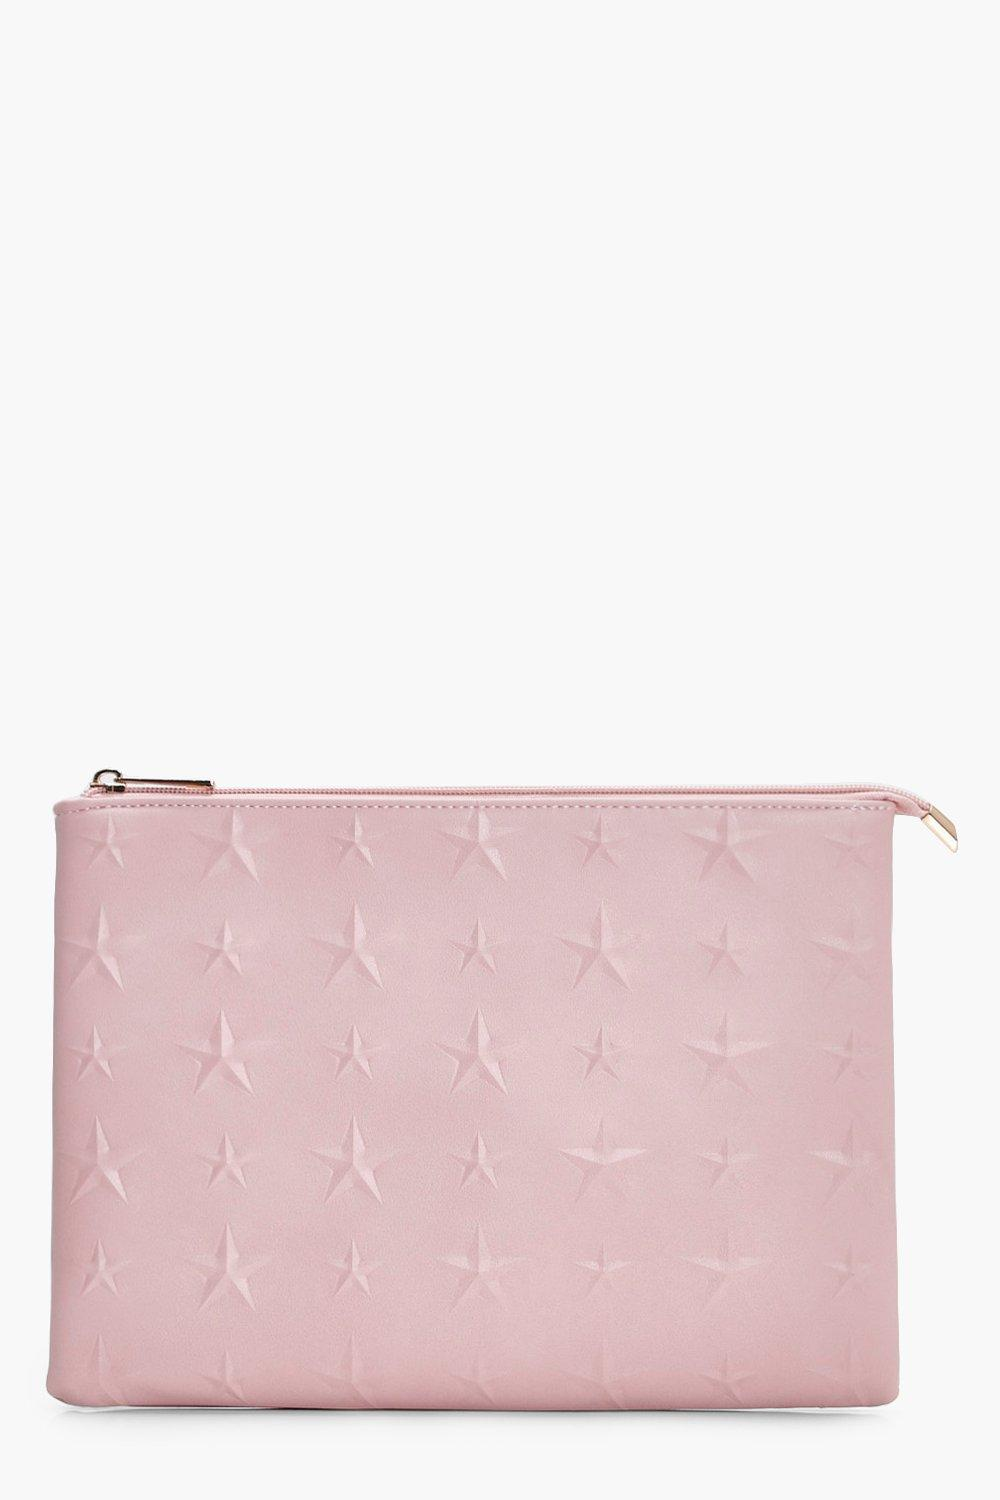 Embossed Star Zip Top Clutch - blush - Skye Emboss